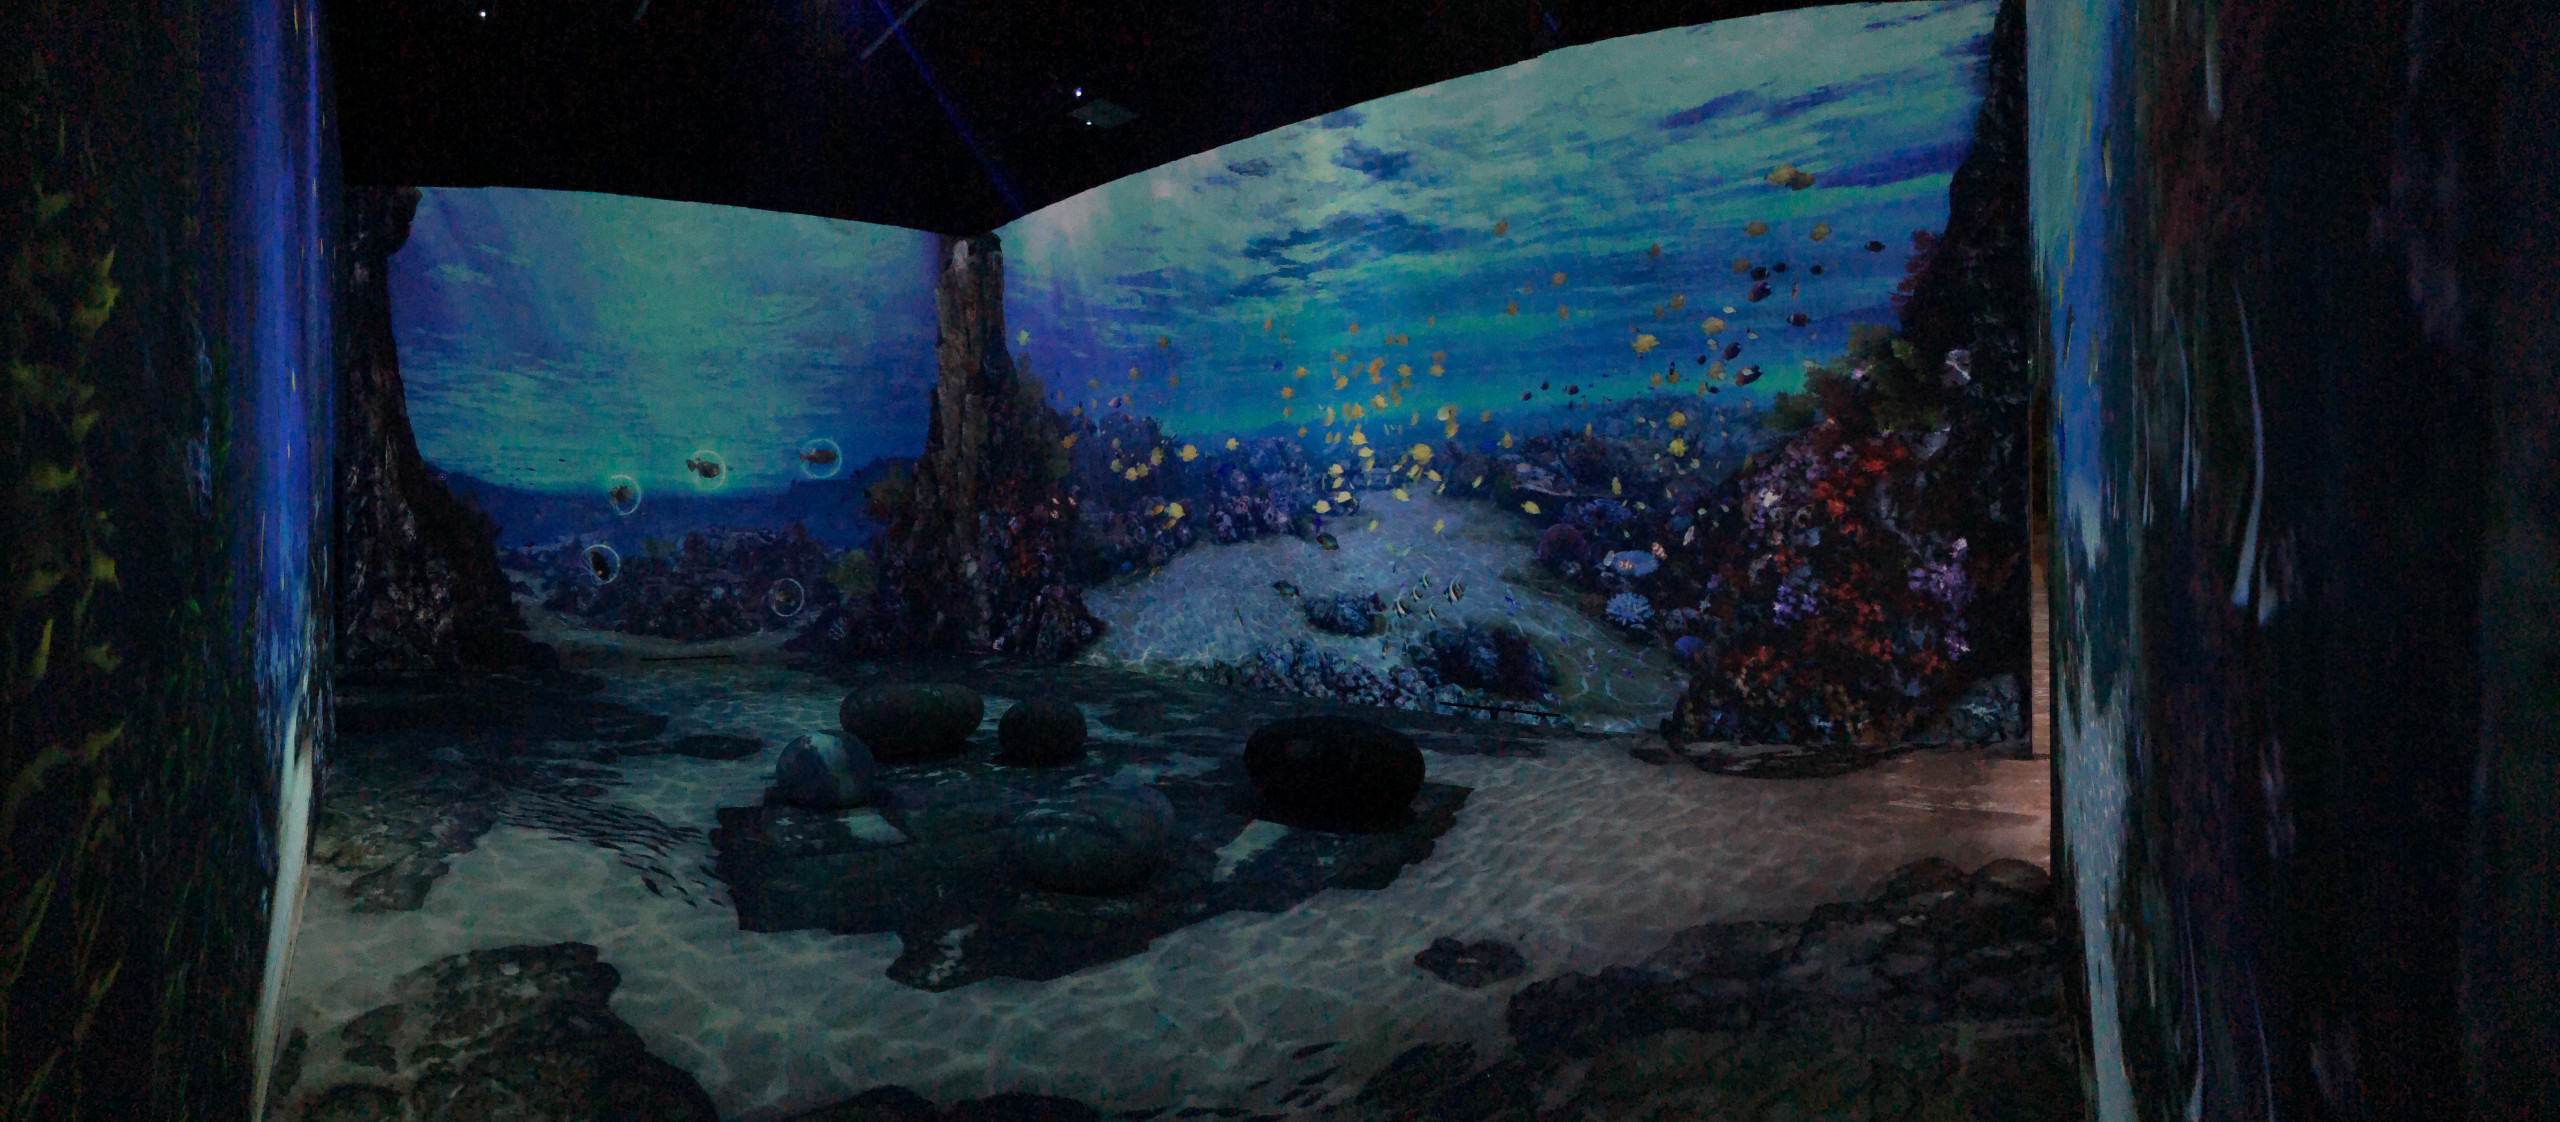 Aquarium virtuel interactif